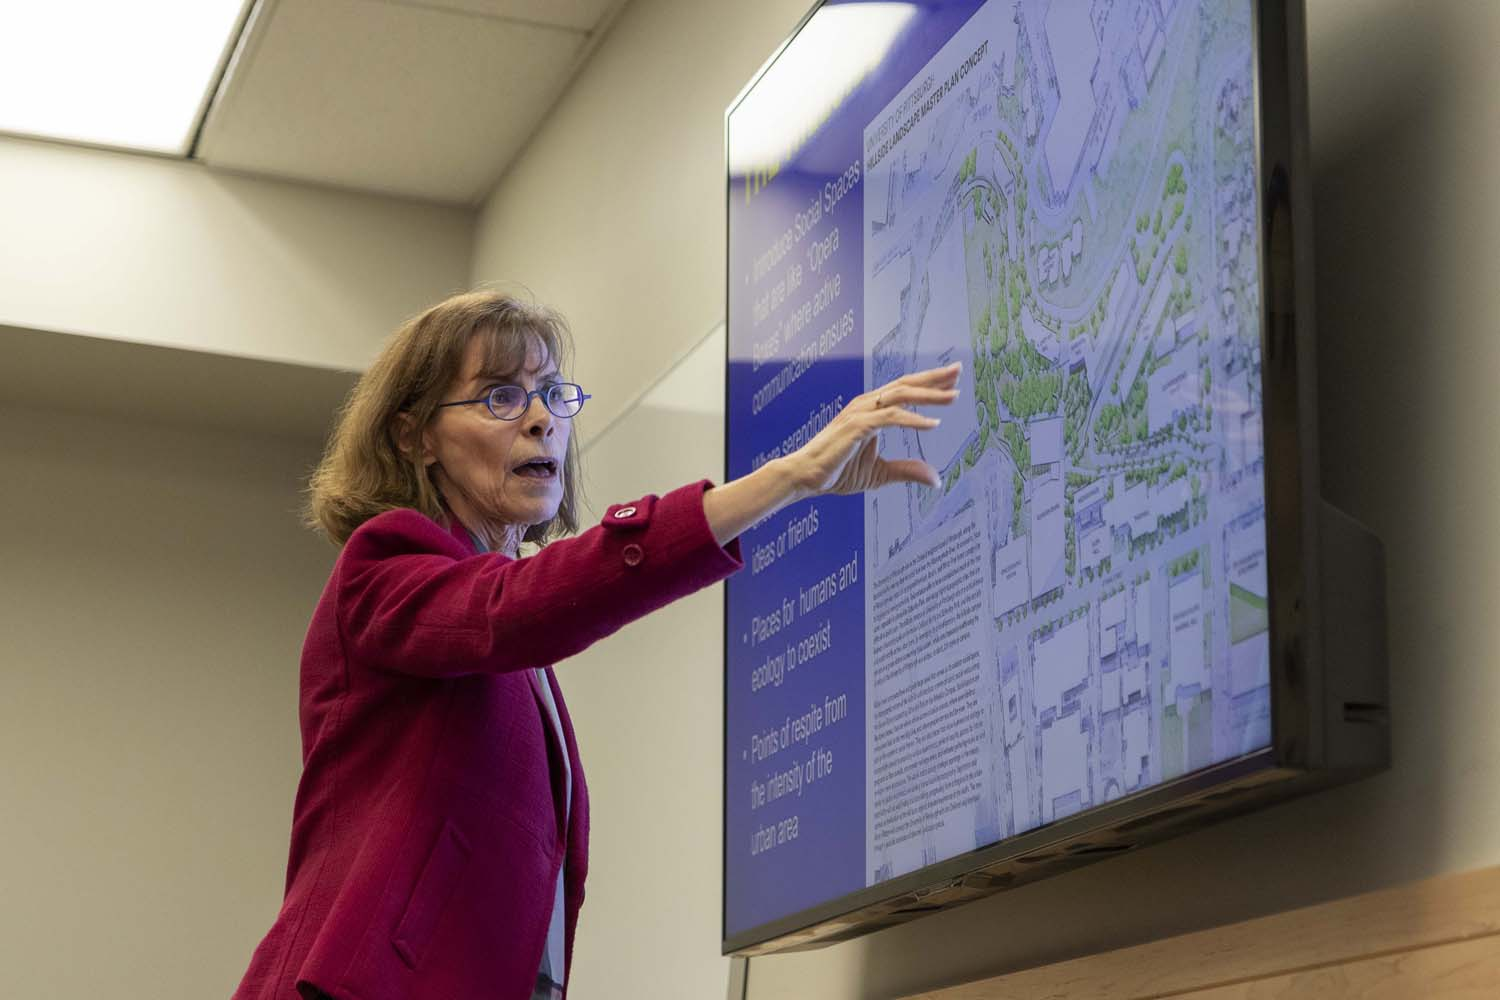 Mary Beth McGrew, Pitt's assistant vice chancellor for planning, discusses potential changes to upper campus at Monday afternoon's Senate Plant Utilization and Planning Committee meeting.